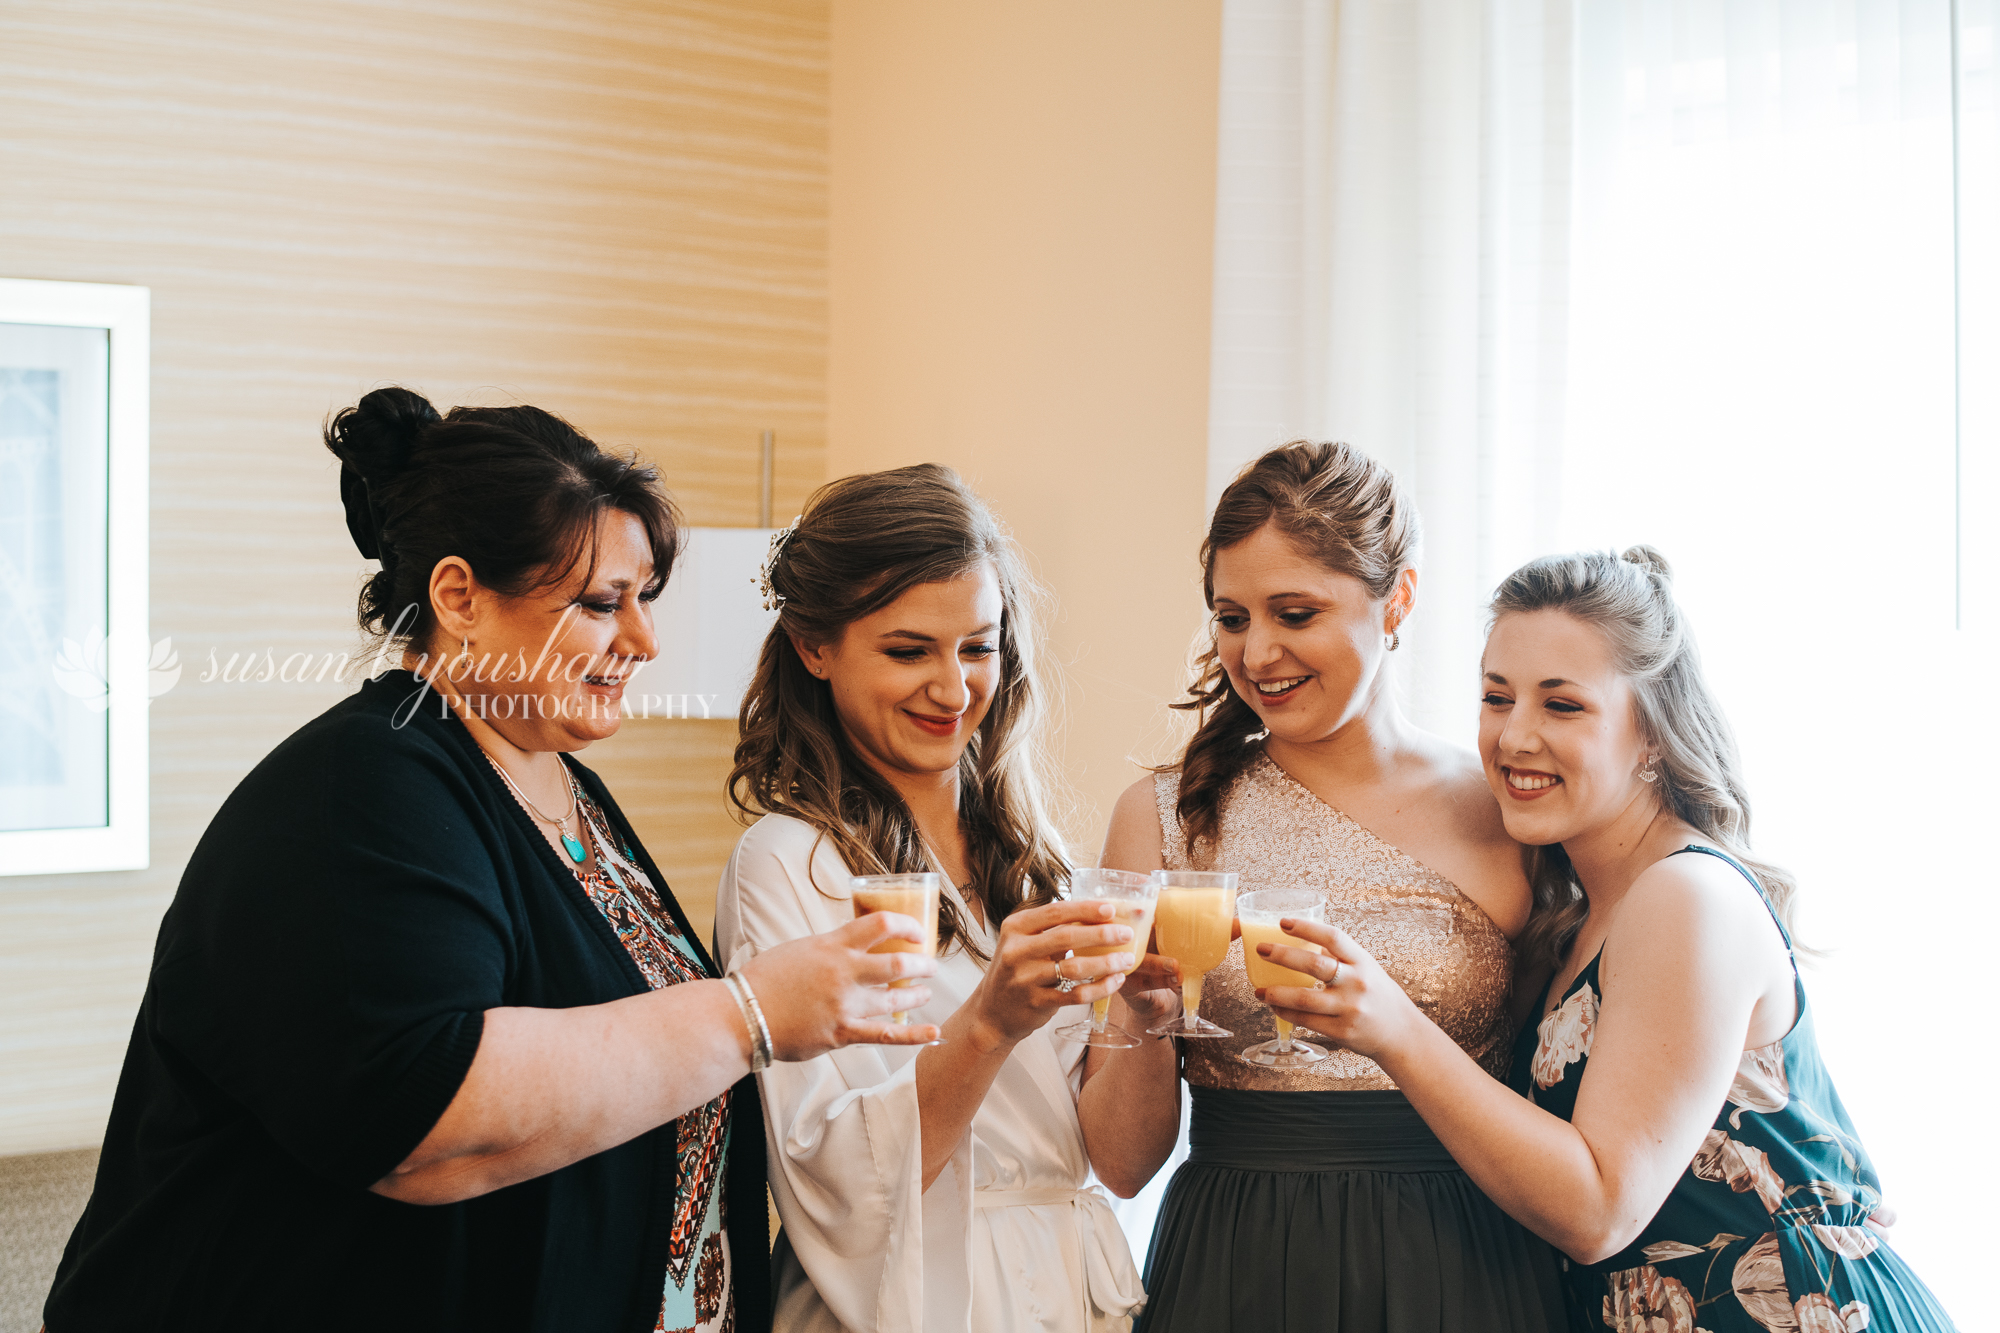 Chynna and John Wedding 05-18-2019 SLY Photography-16.jpg